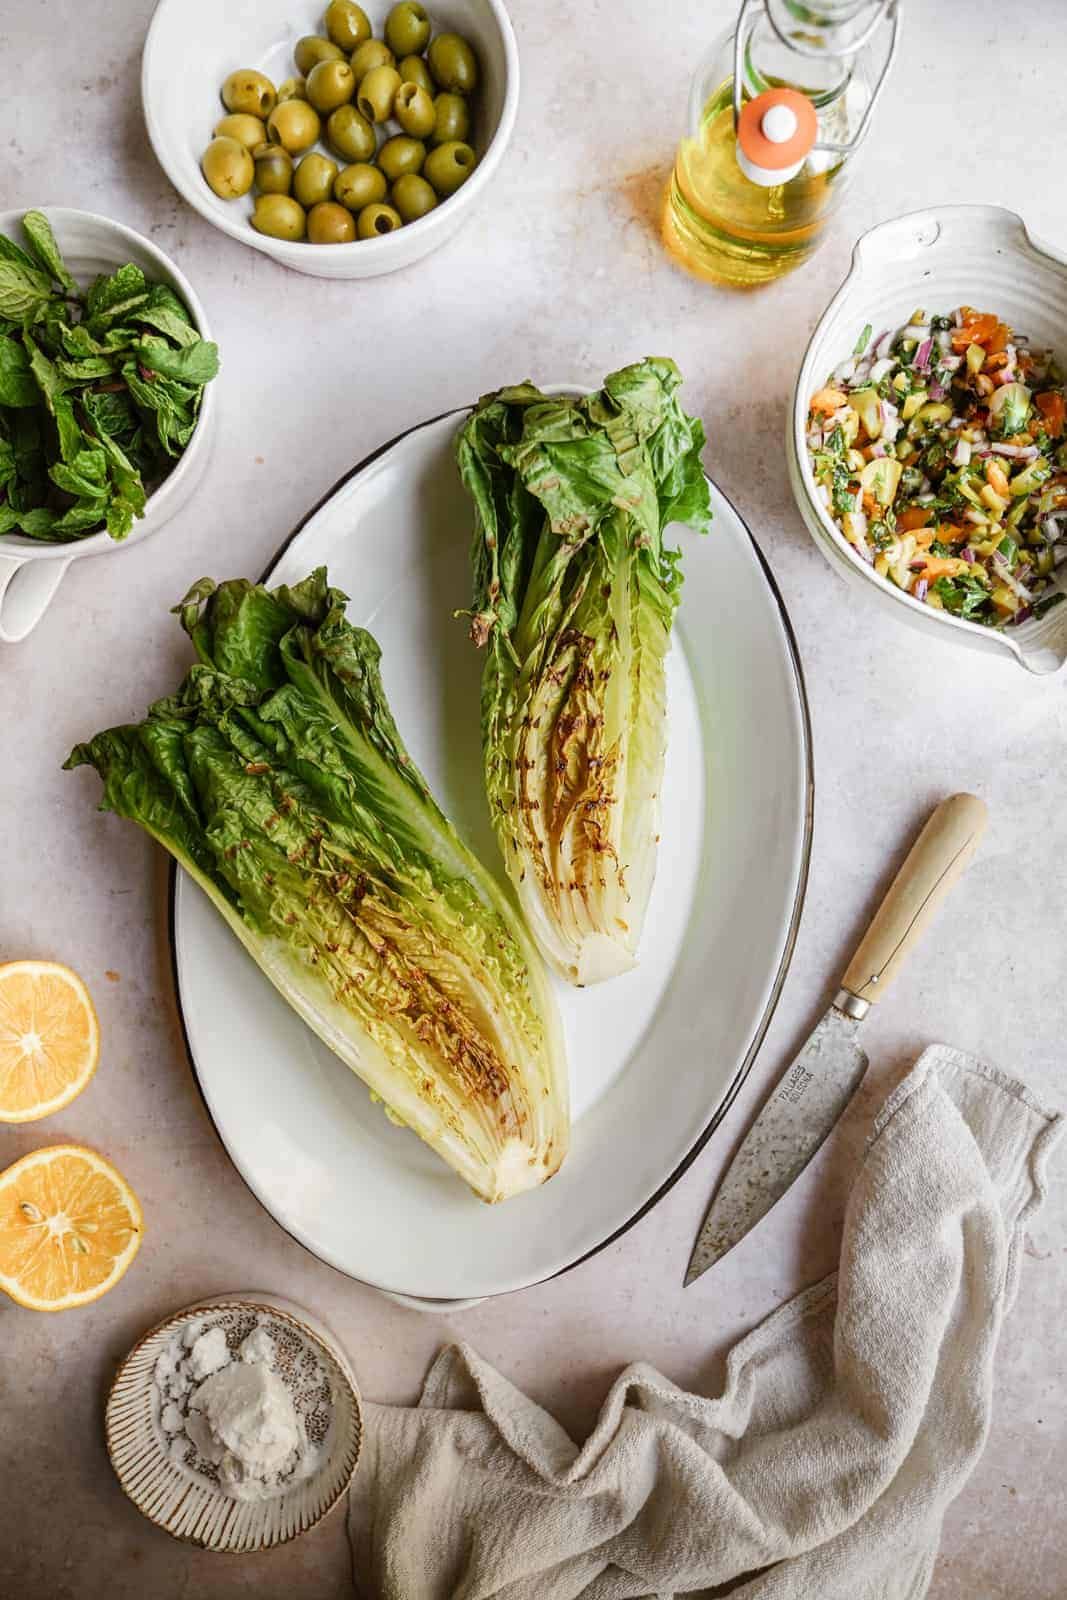 grilled romaine lettuce heads on a serving dish